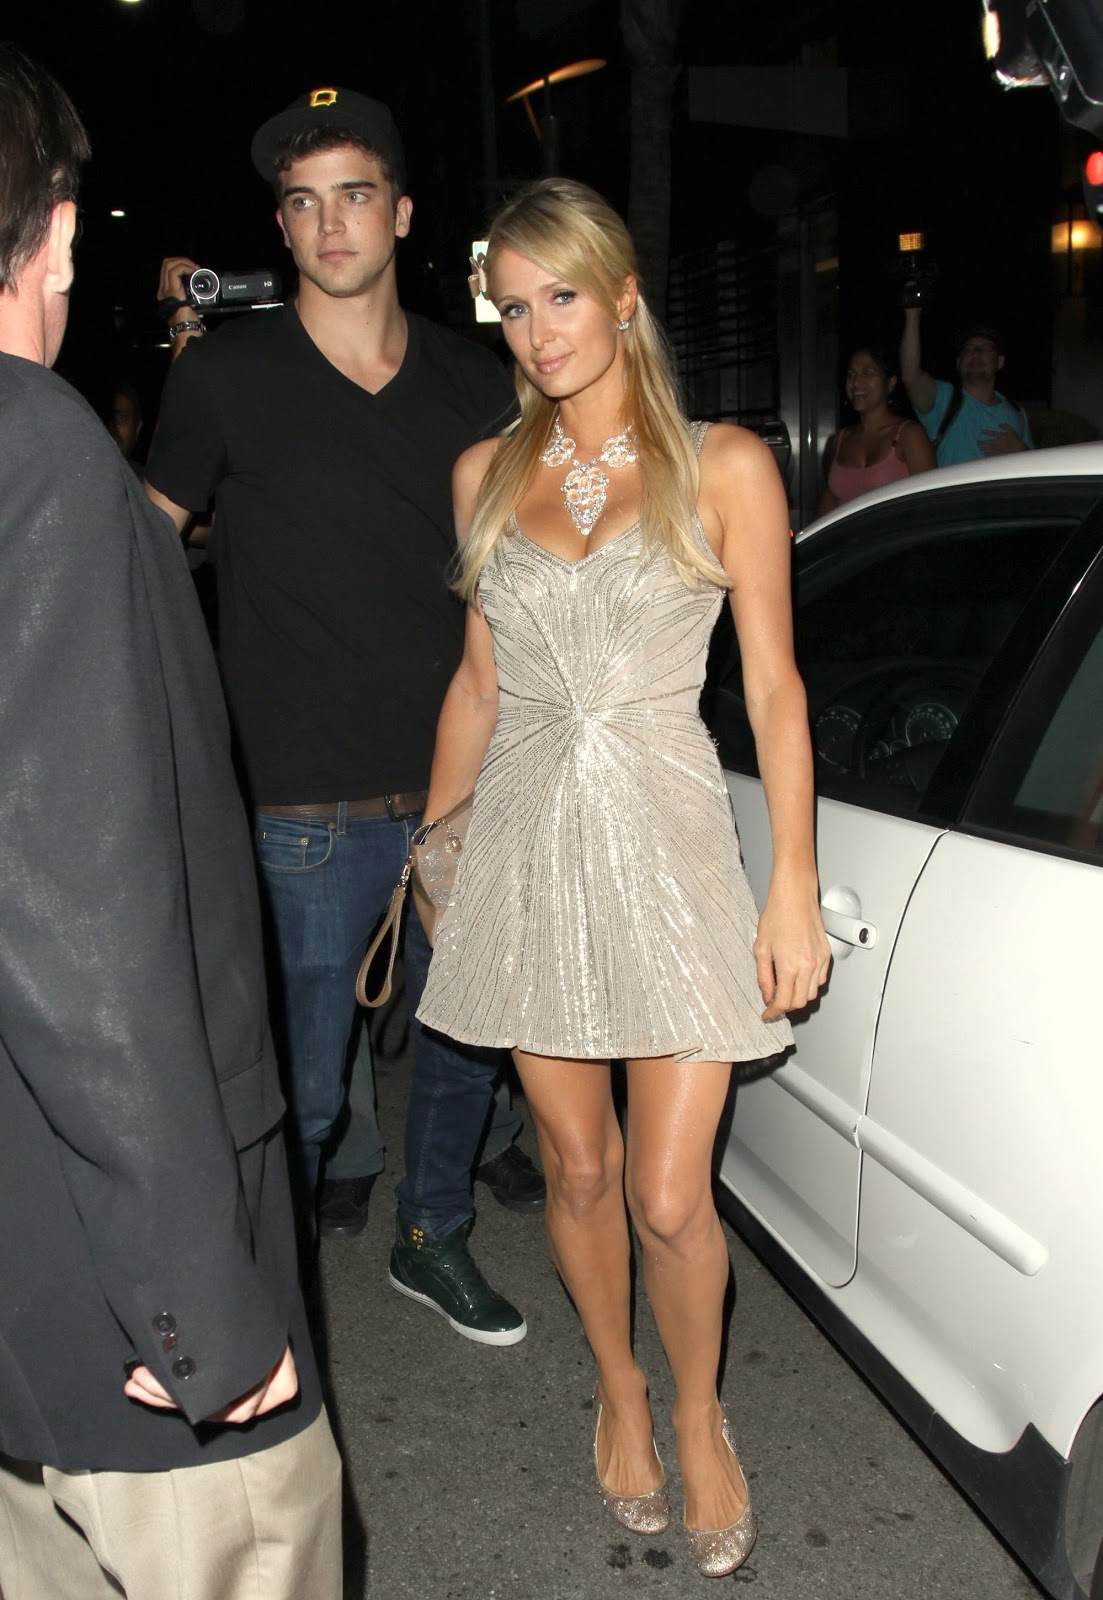 hiltons dating Who is paris hilton dating who paris hilton dated list of paris hilton loves, ex boyfriends breakup rumors the loves, exes and relationships of paris hilton, li.